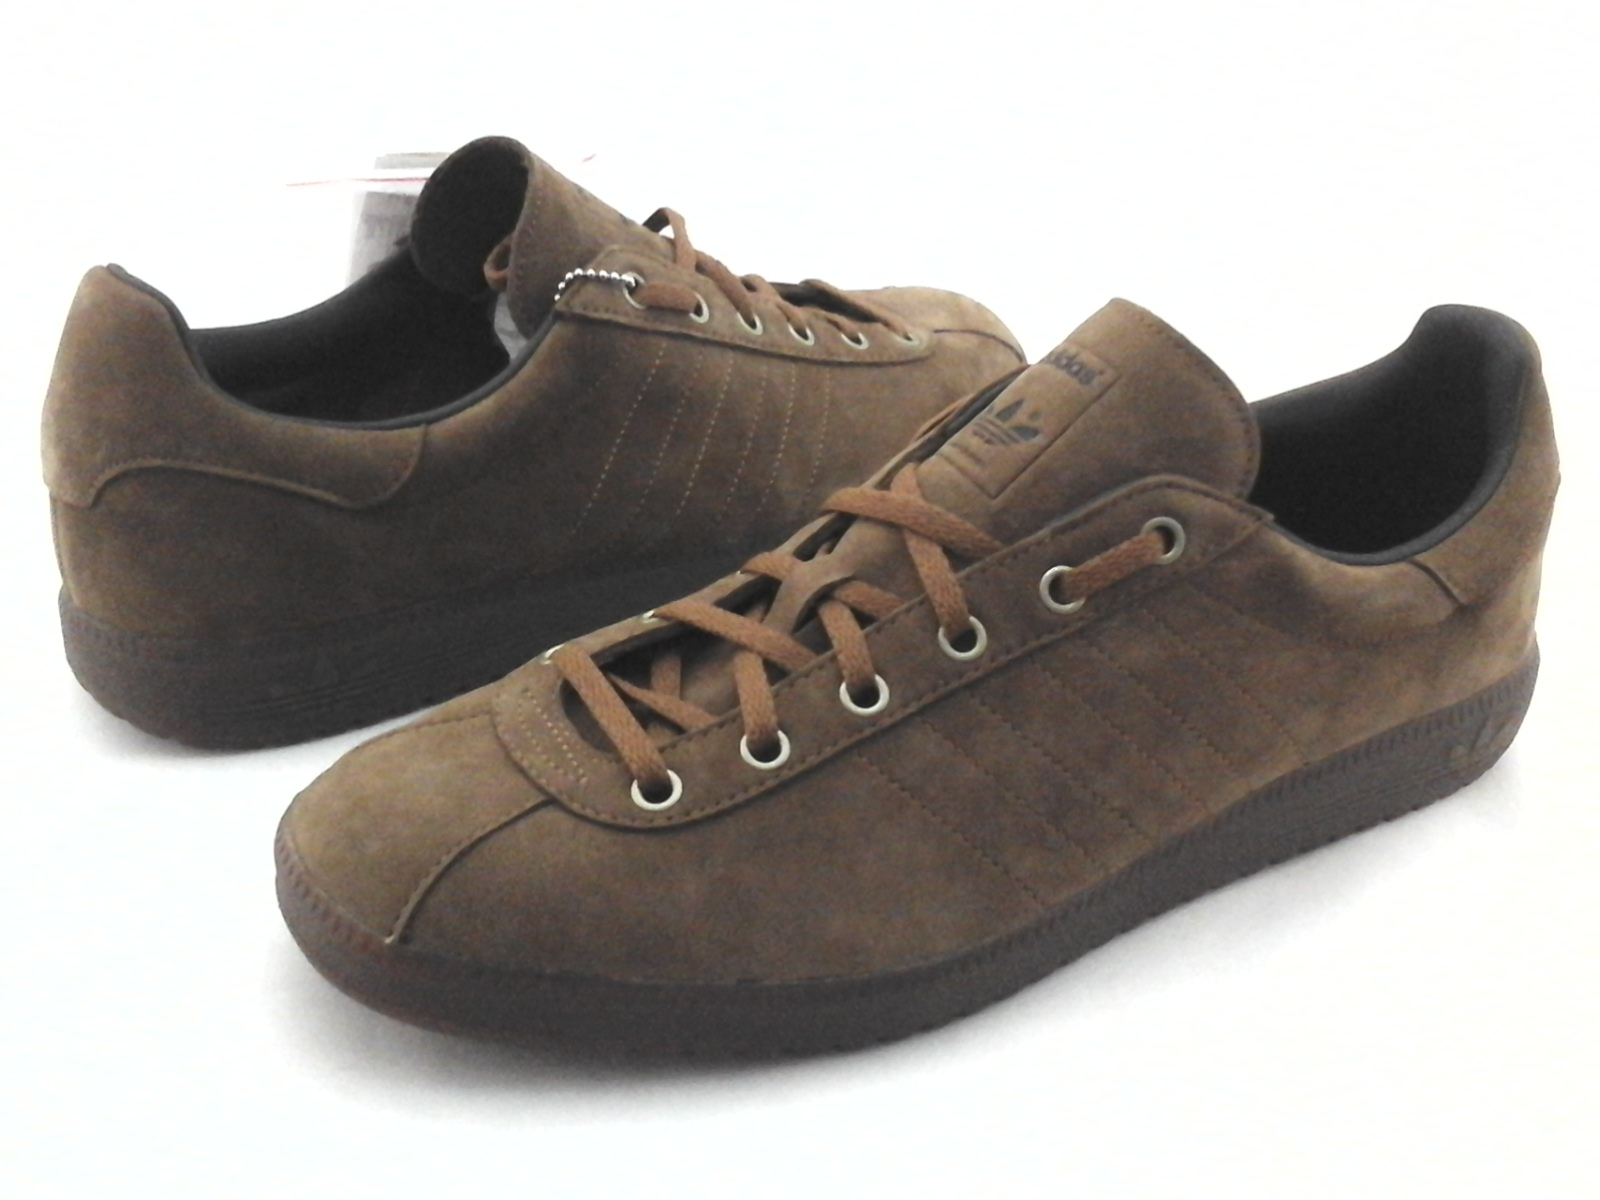 a54fec96aaedb5 Adidas SPEZIAL Super Tobacco Brown Suede Sneakers Shoes CG2926 Mens US 13 48  New